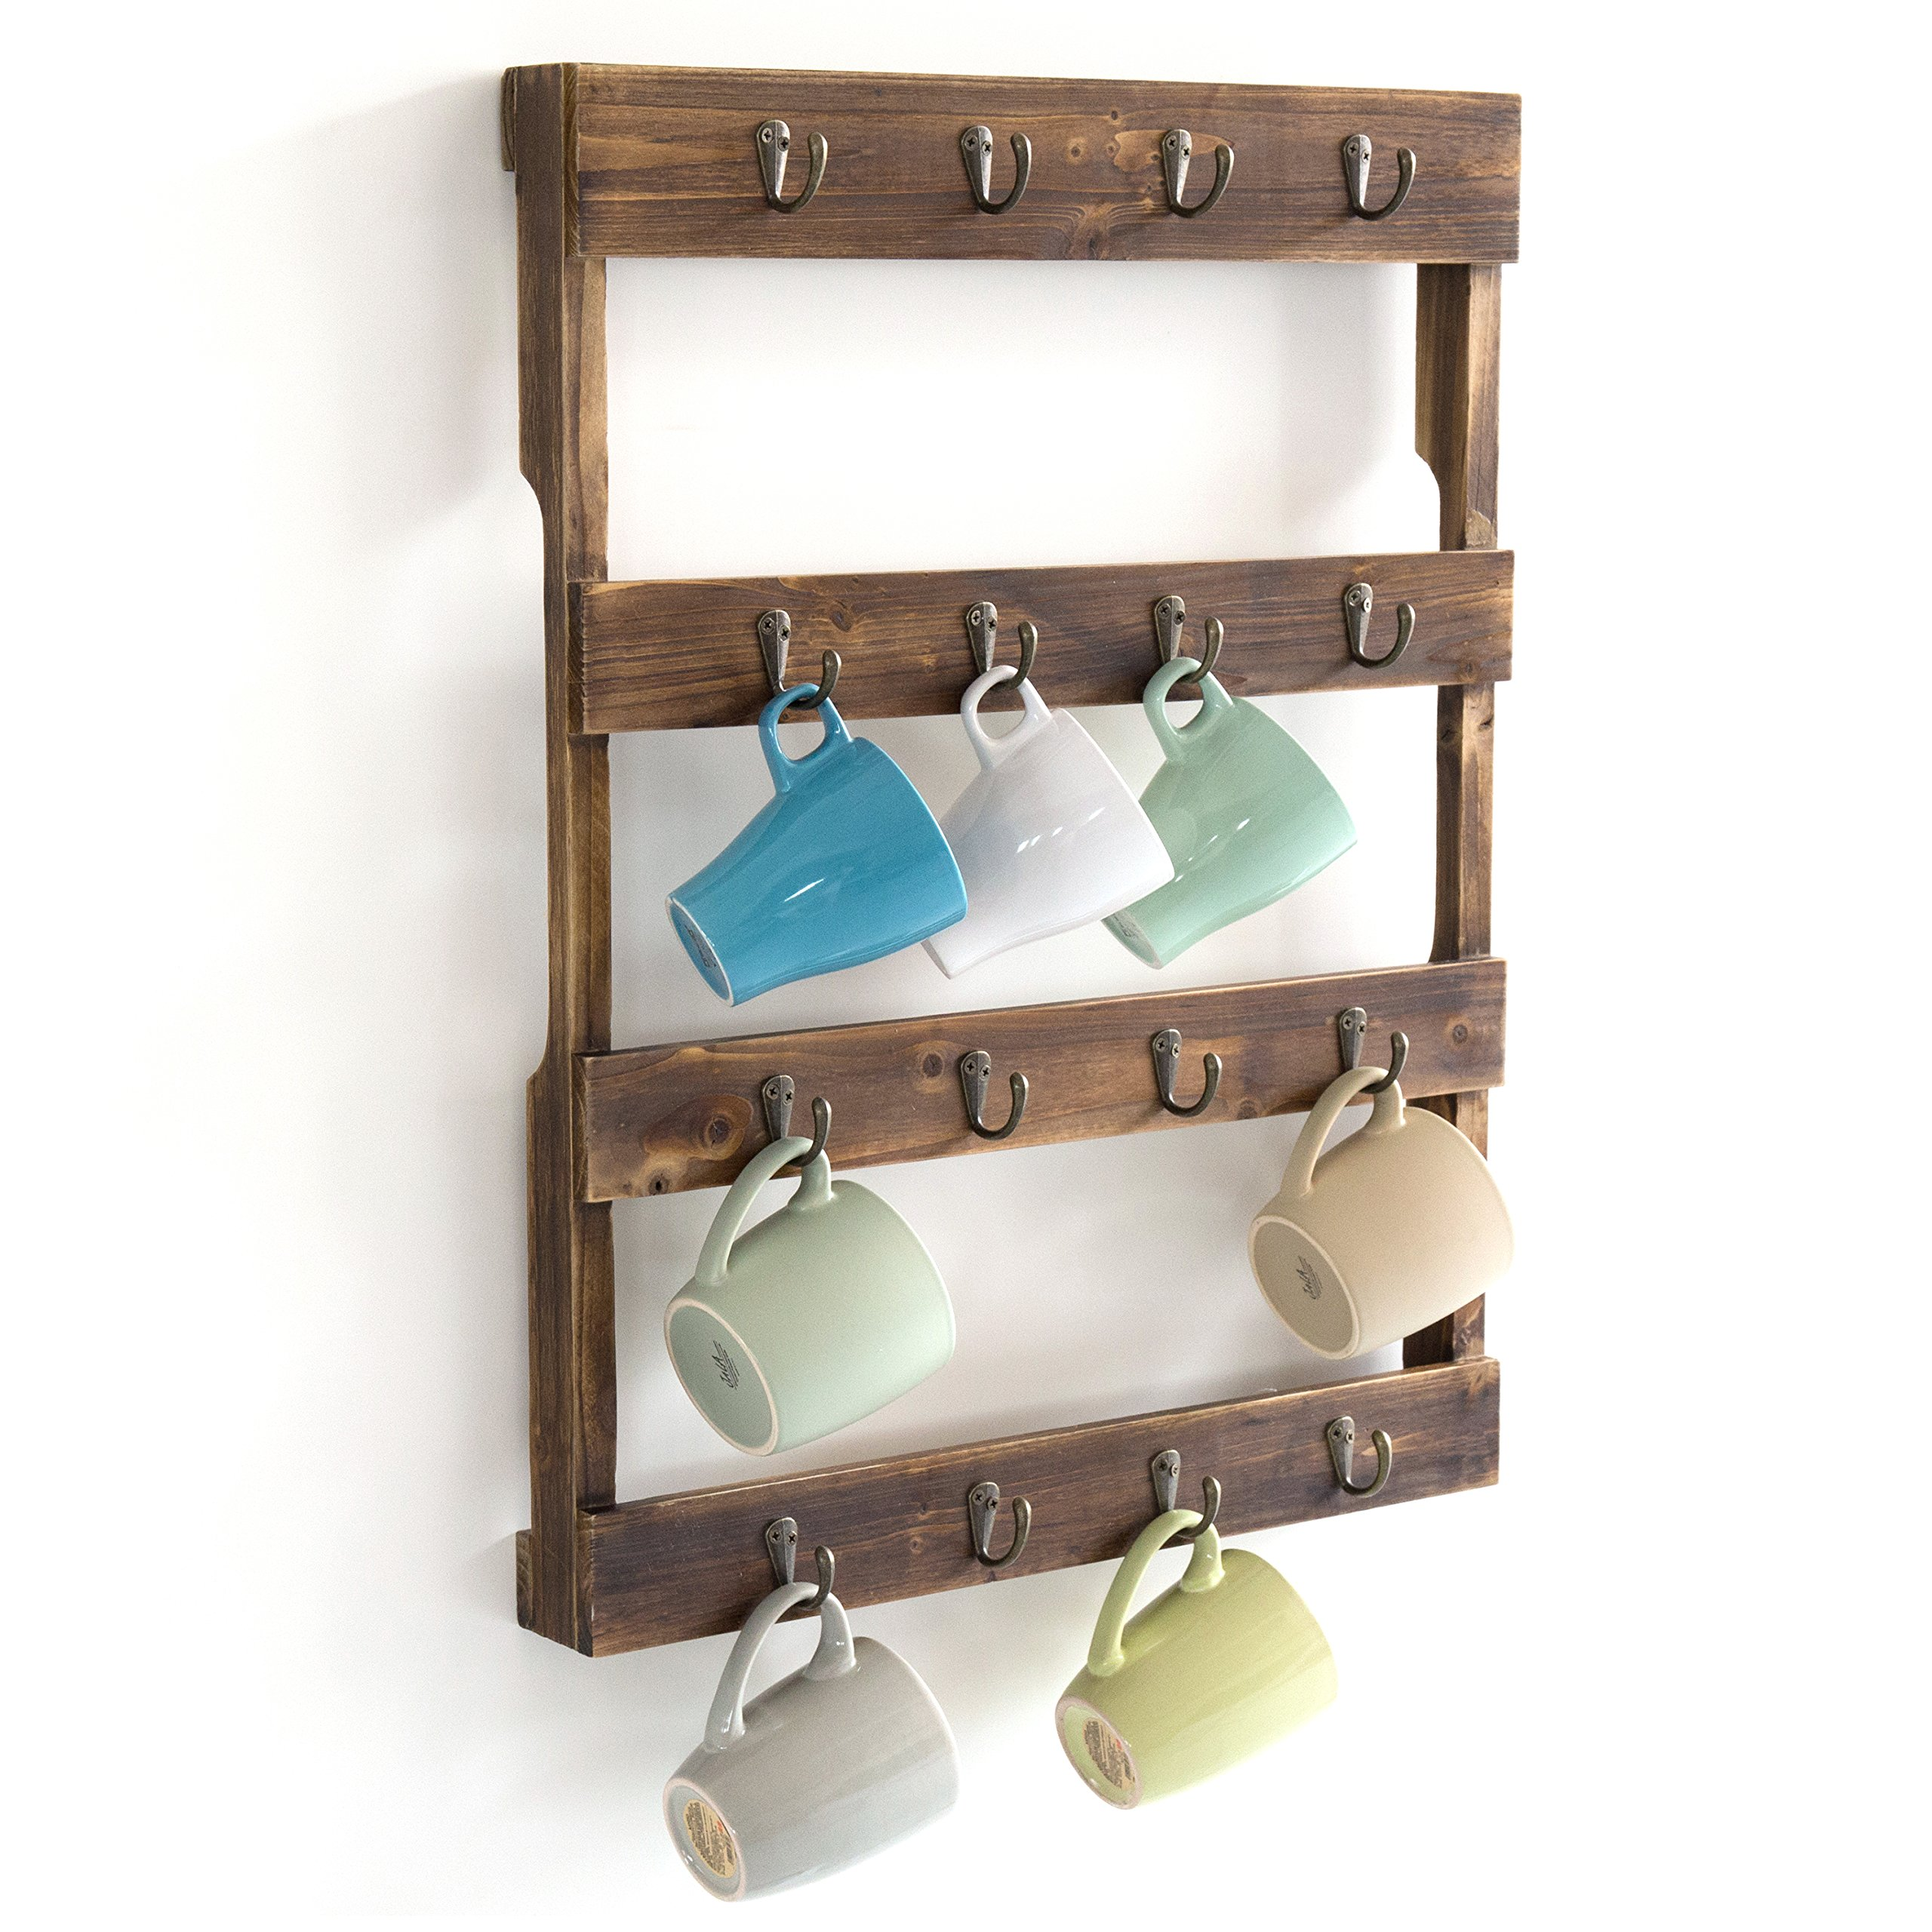 Wall Mounted 12 Hook Torched Wood Coffee Mug Cup Holder Display Rack by MyGift